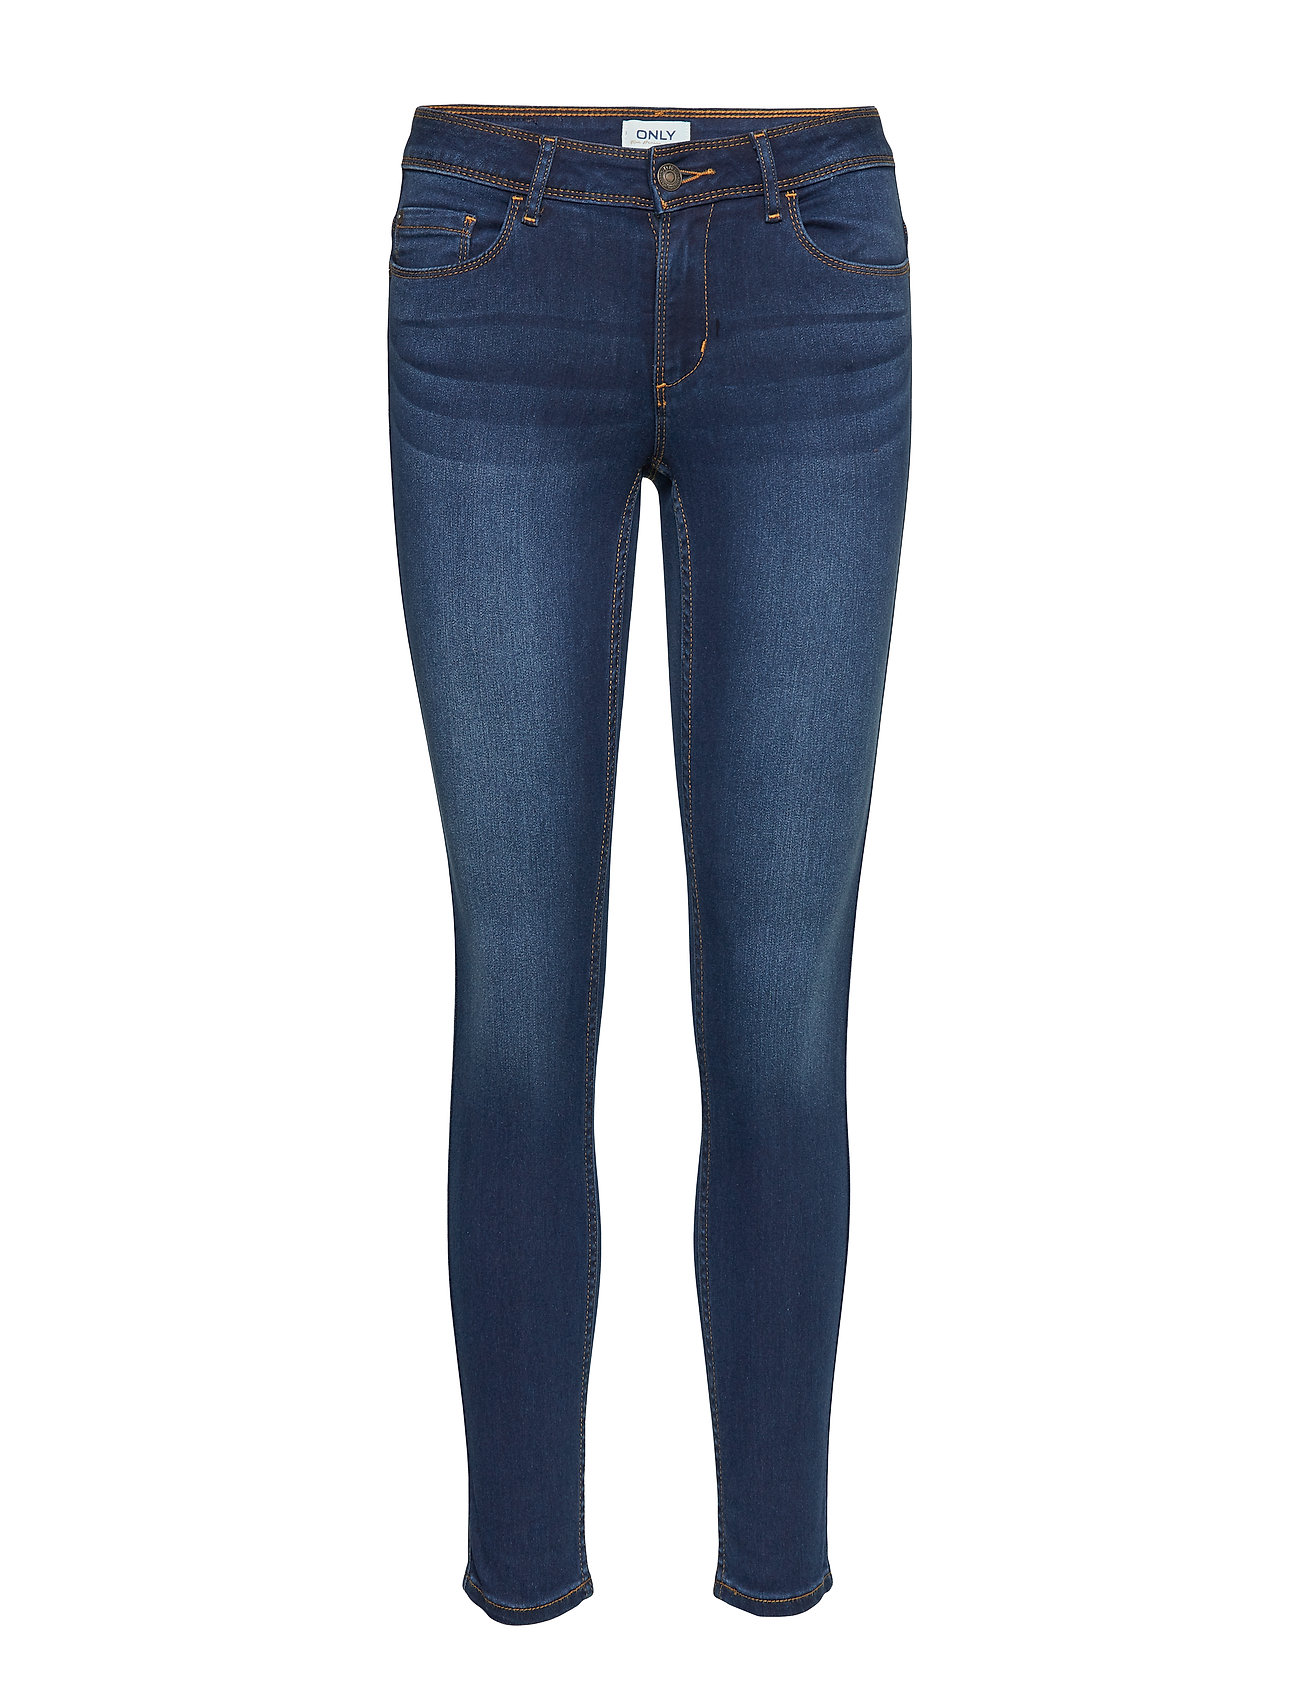 ONLY onlULTIMATE KING REG JEANS CRY200 NOOS - DARK BLUE DENIM